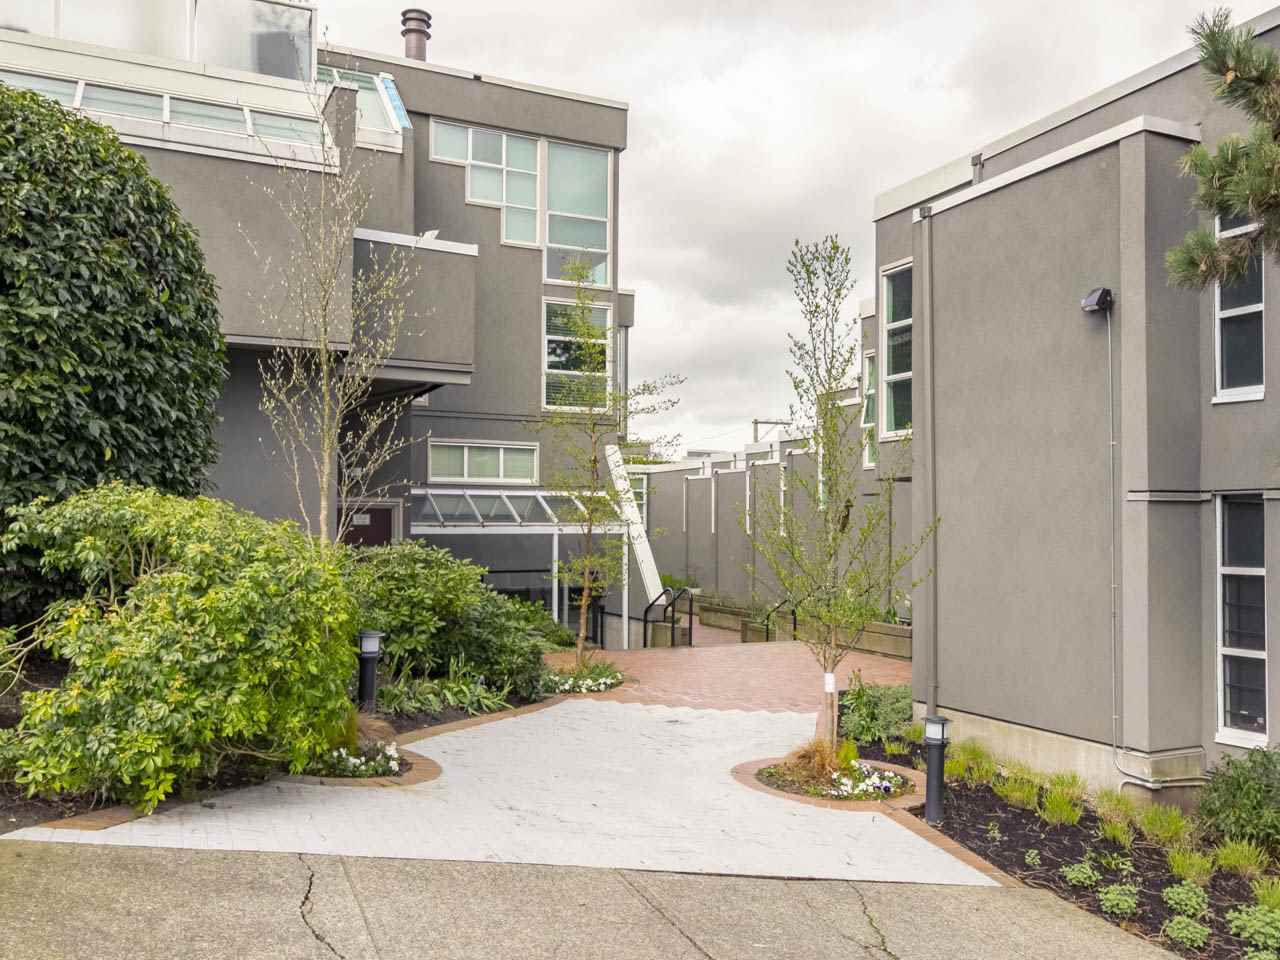 Main Photo: 2225 OAK STREET in Vancouver: Fairview VW Townhouse for sale (Vancouver West)  : MLS®# R2256222